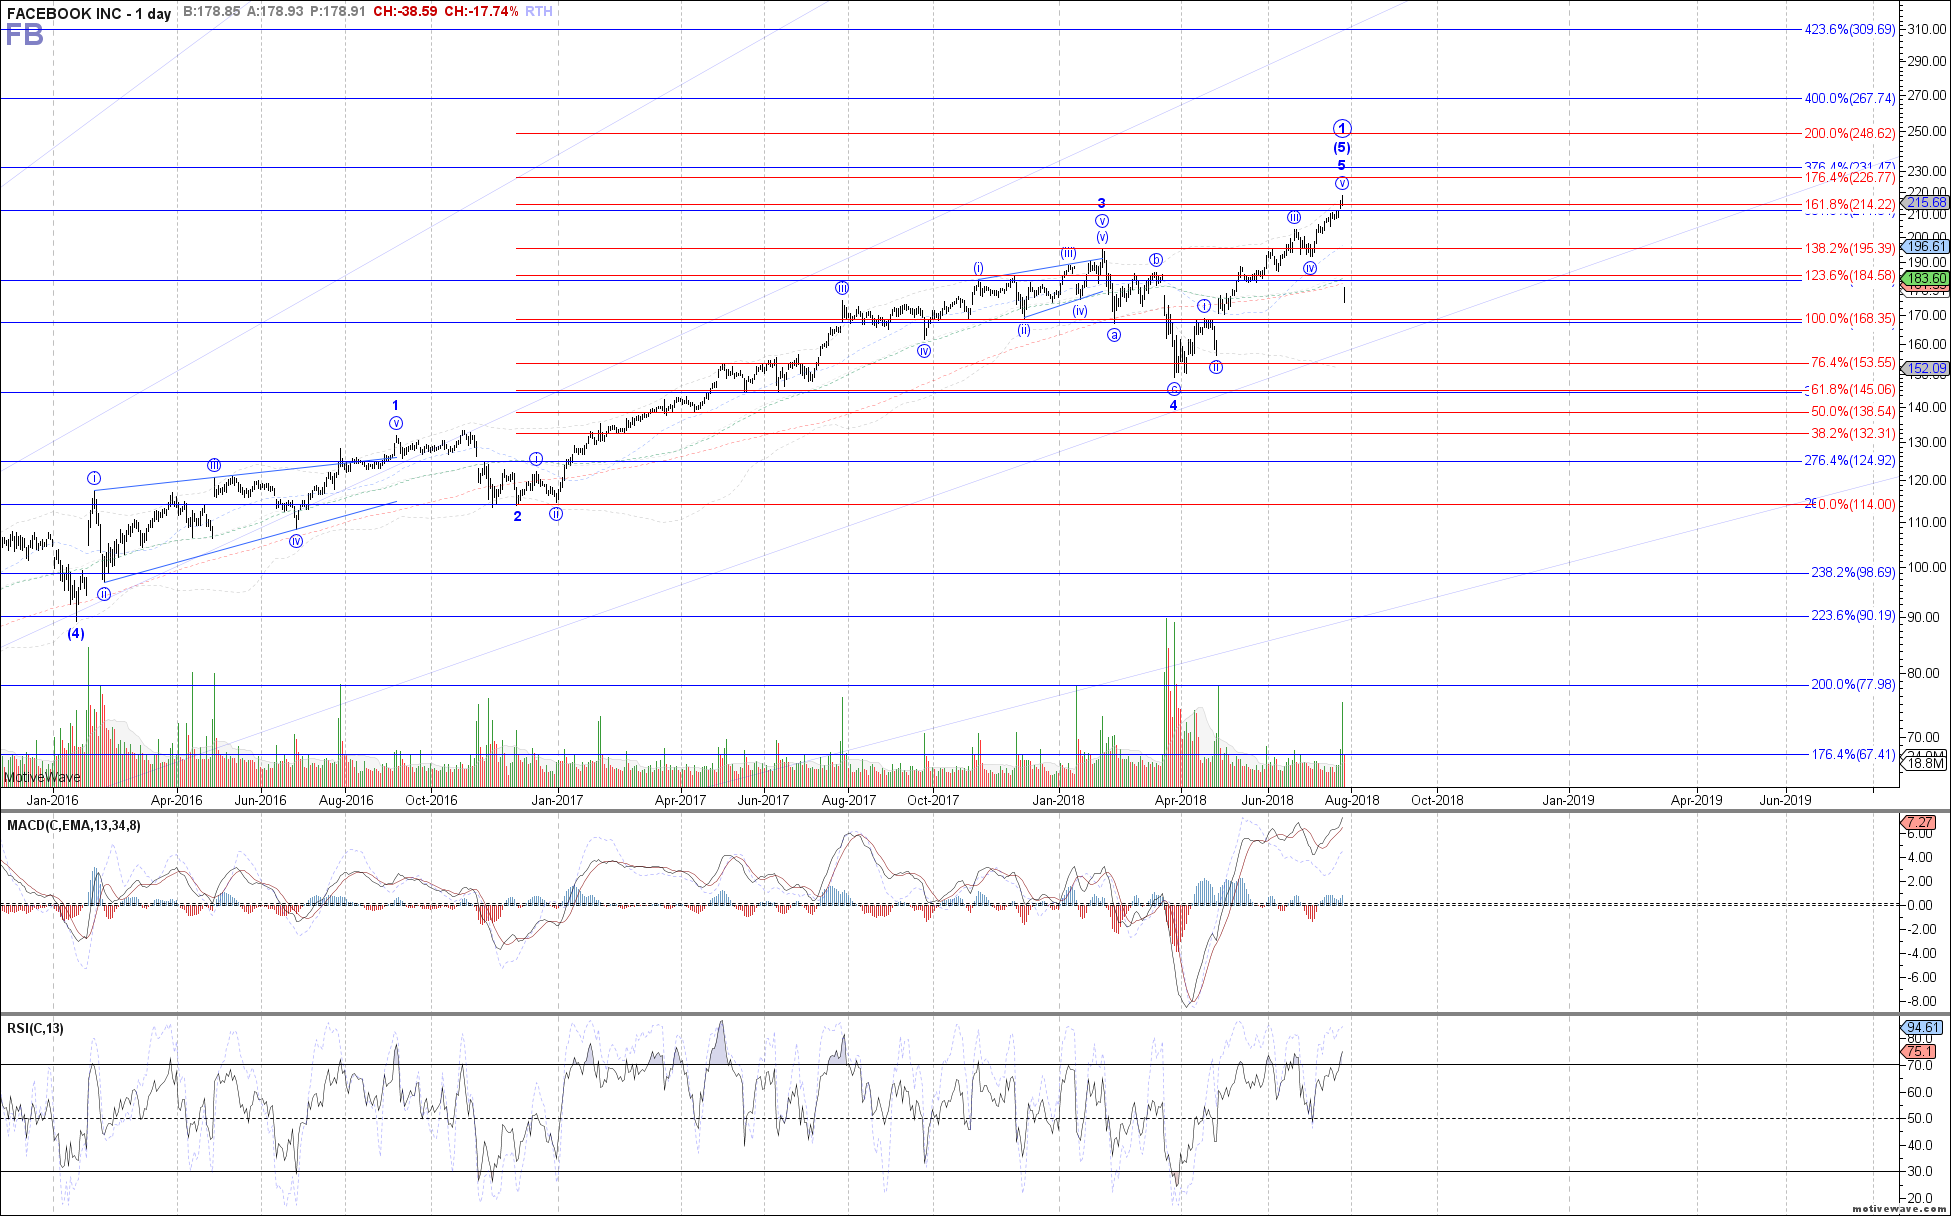 FB - Primary Analysis - Jul-26 0644 AM (1 day)